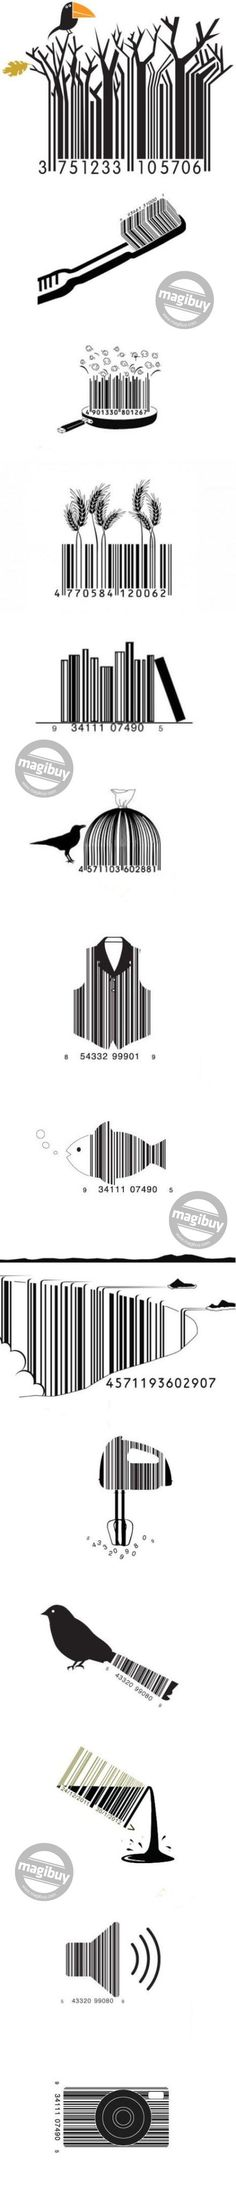 See our range of barcode solutions at http://www.theplasticcardpeople.co.uk